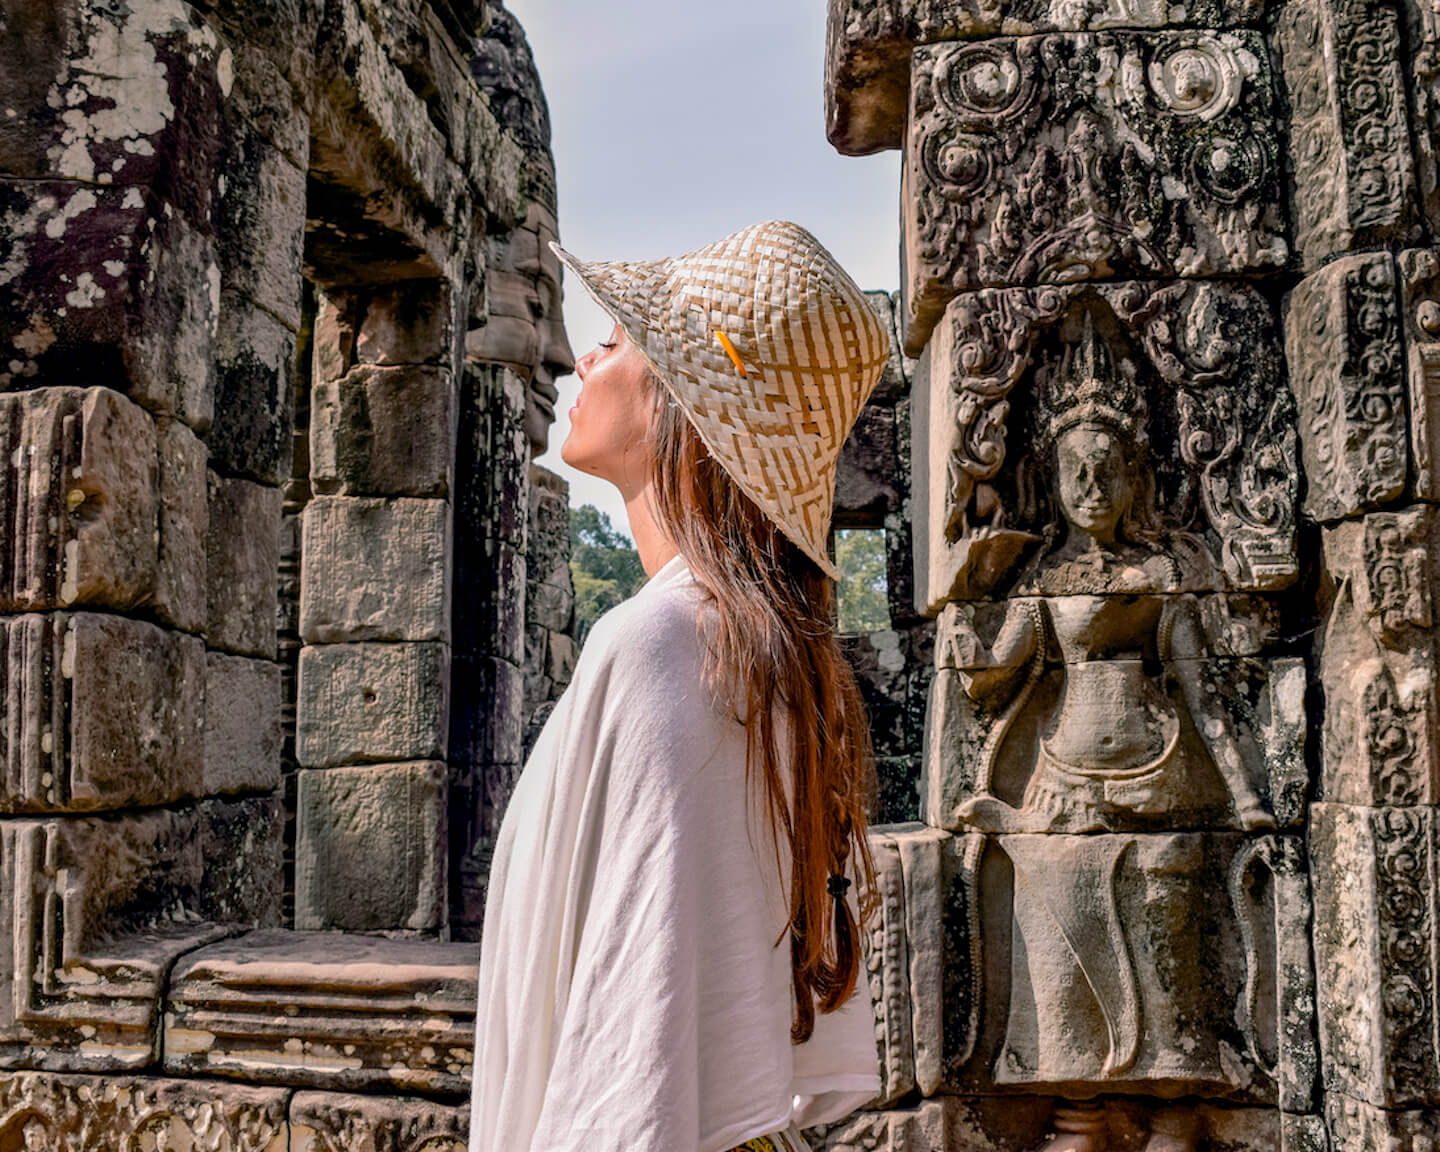 girl pretending to kiss stone face at temple ruins